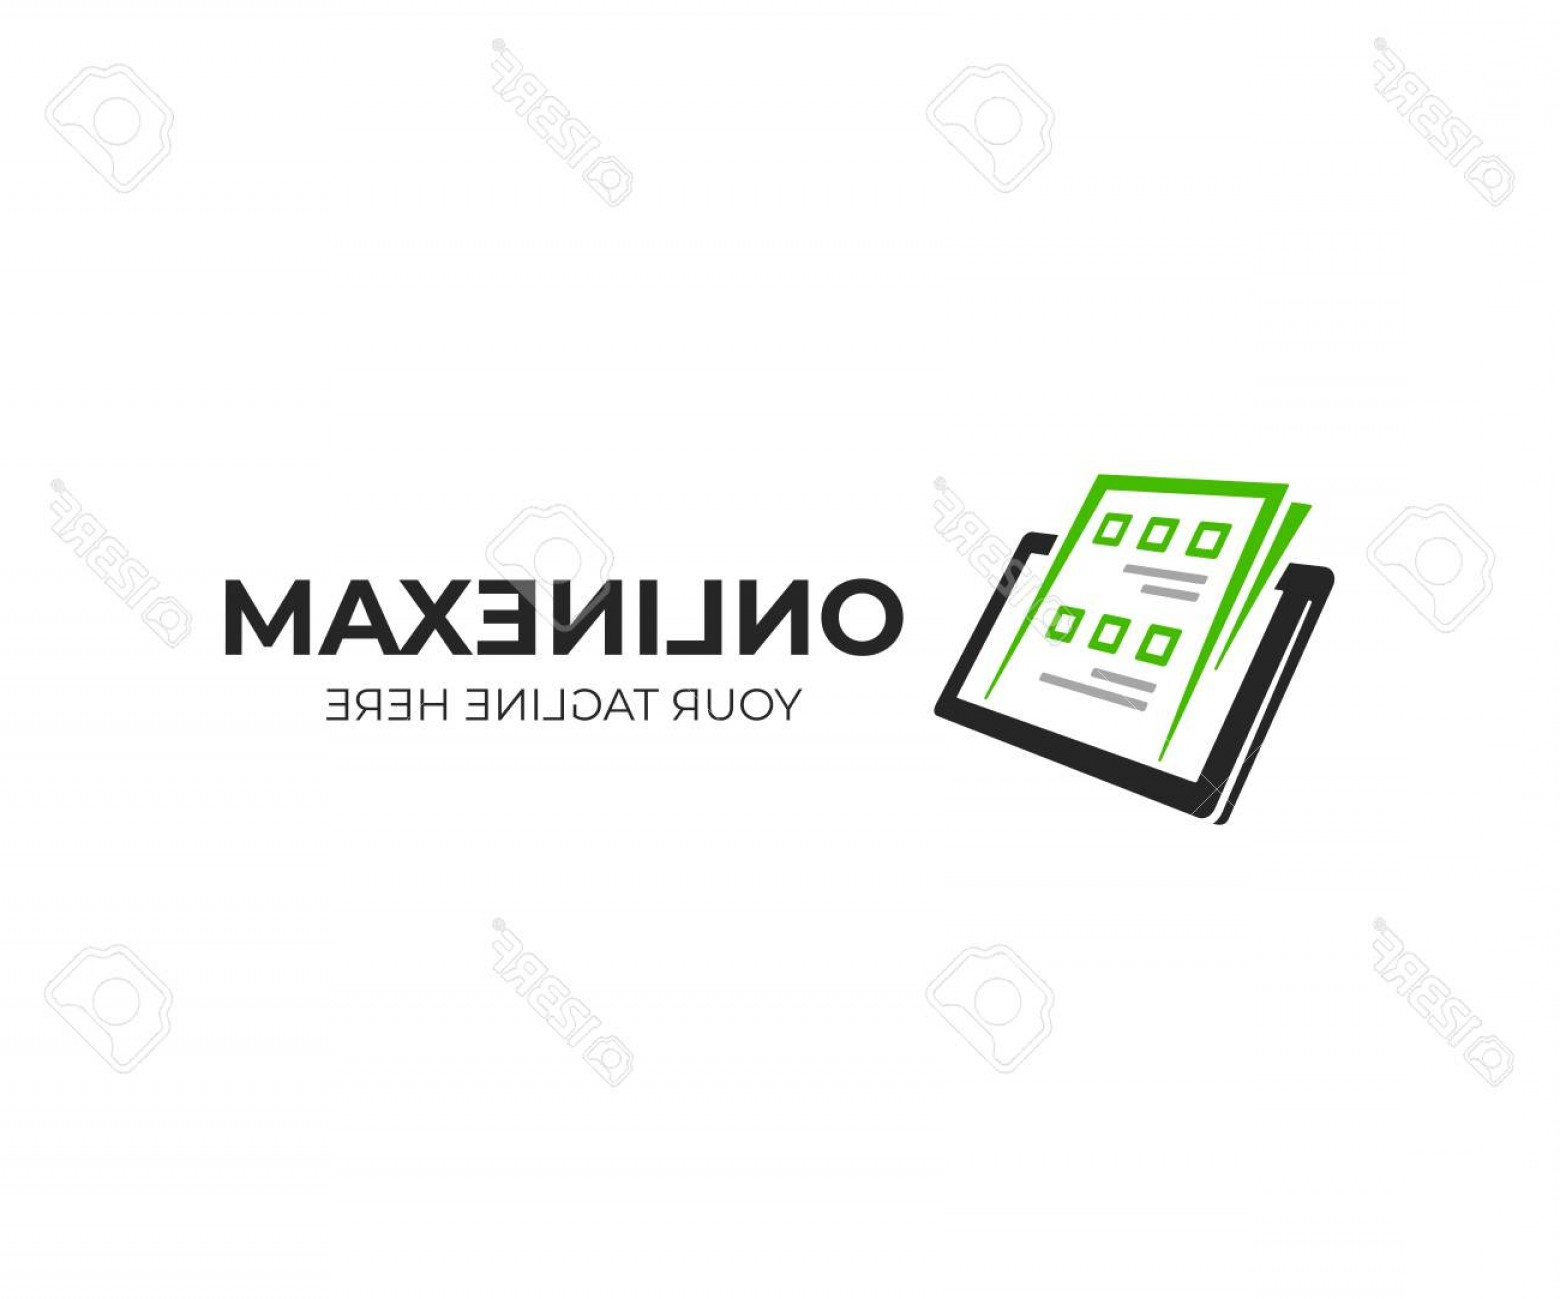 BBB Logo In Vector Form: Photostock Vector Exam Paper And Tablet Logo Template Online Exam Vector Design Survey Form On Tablet Logotype